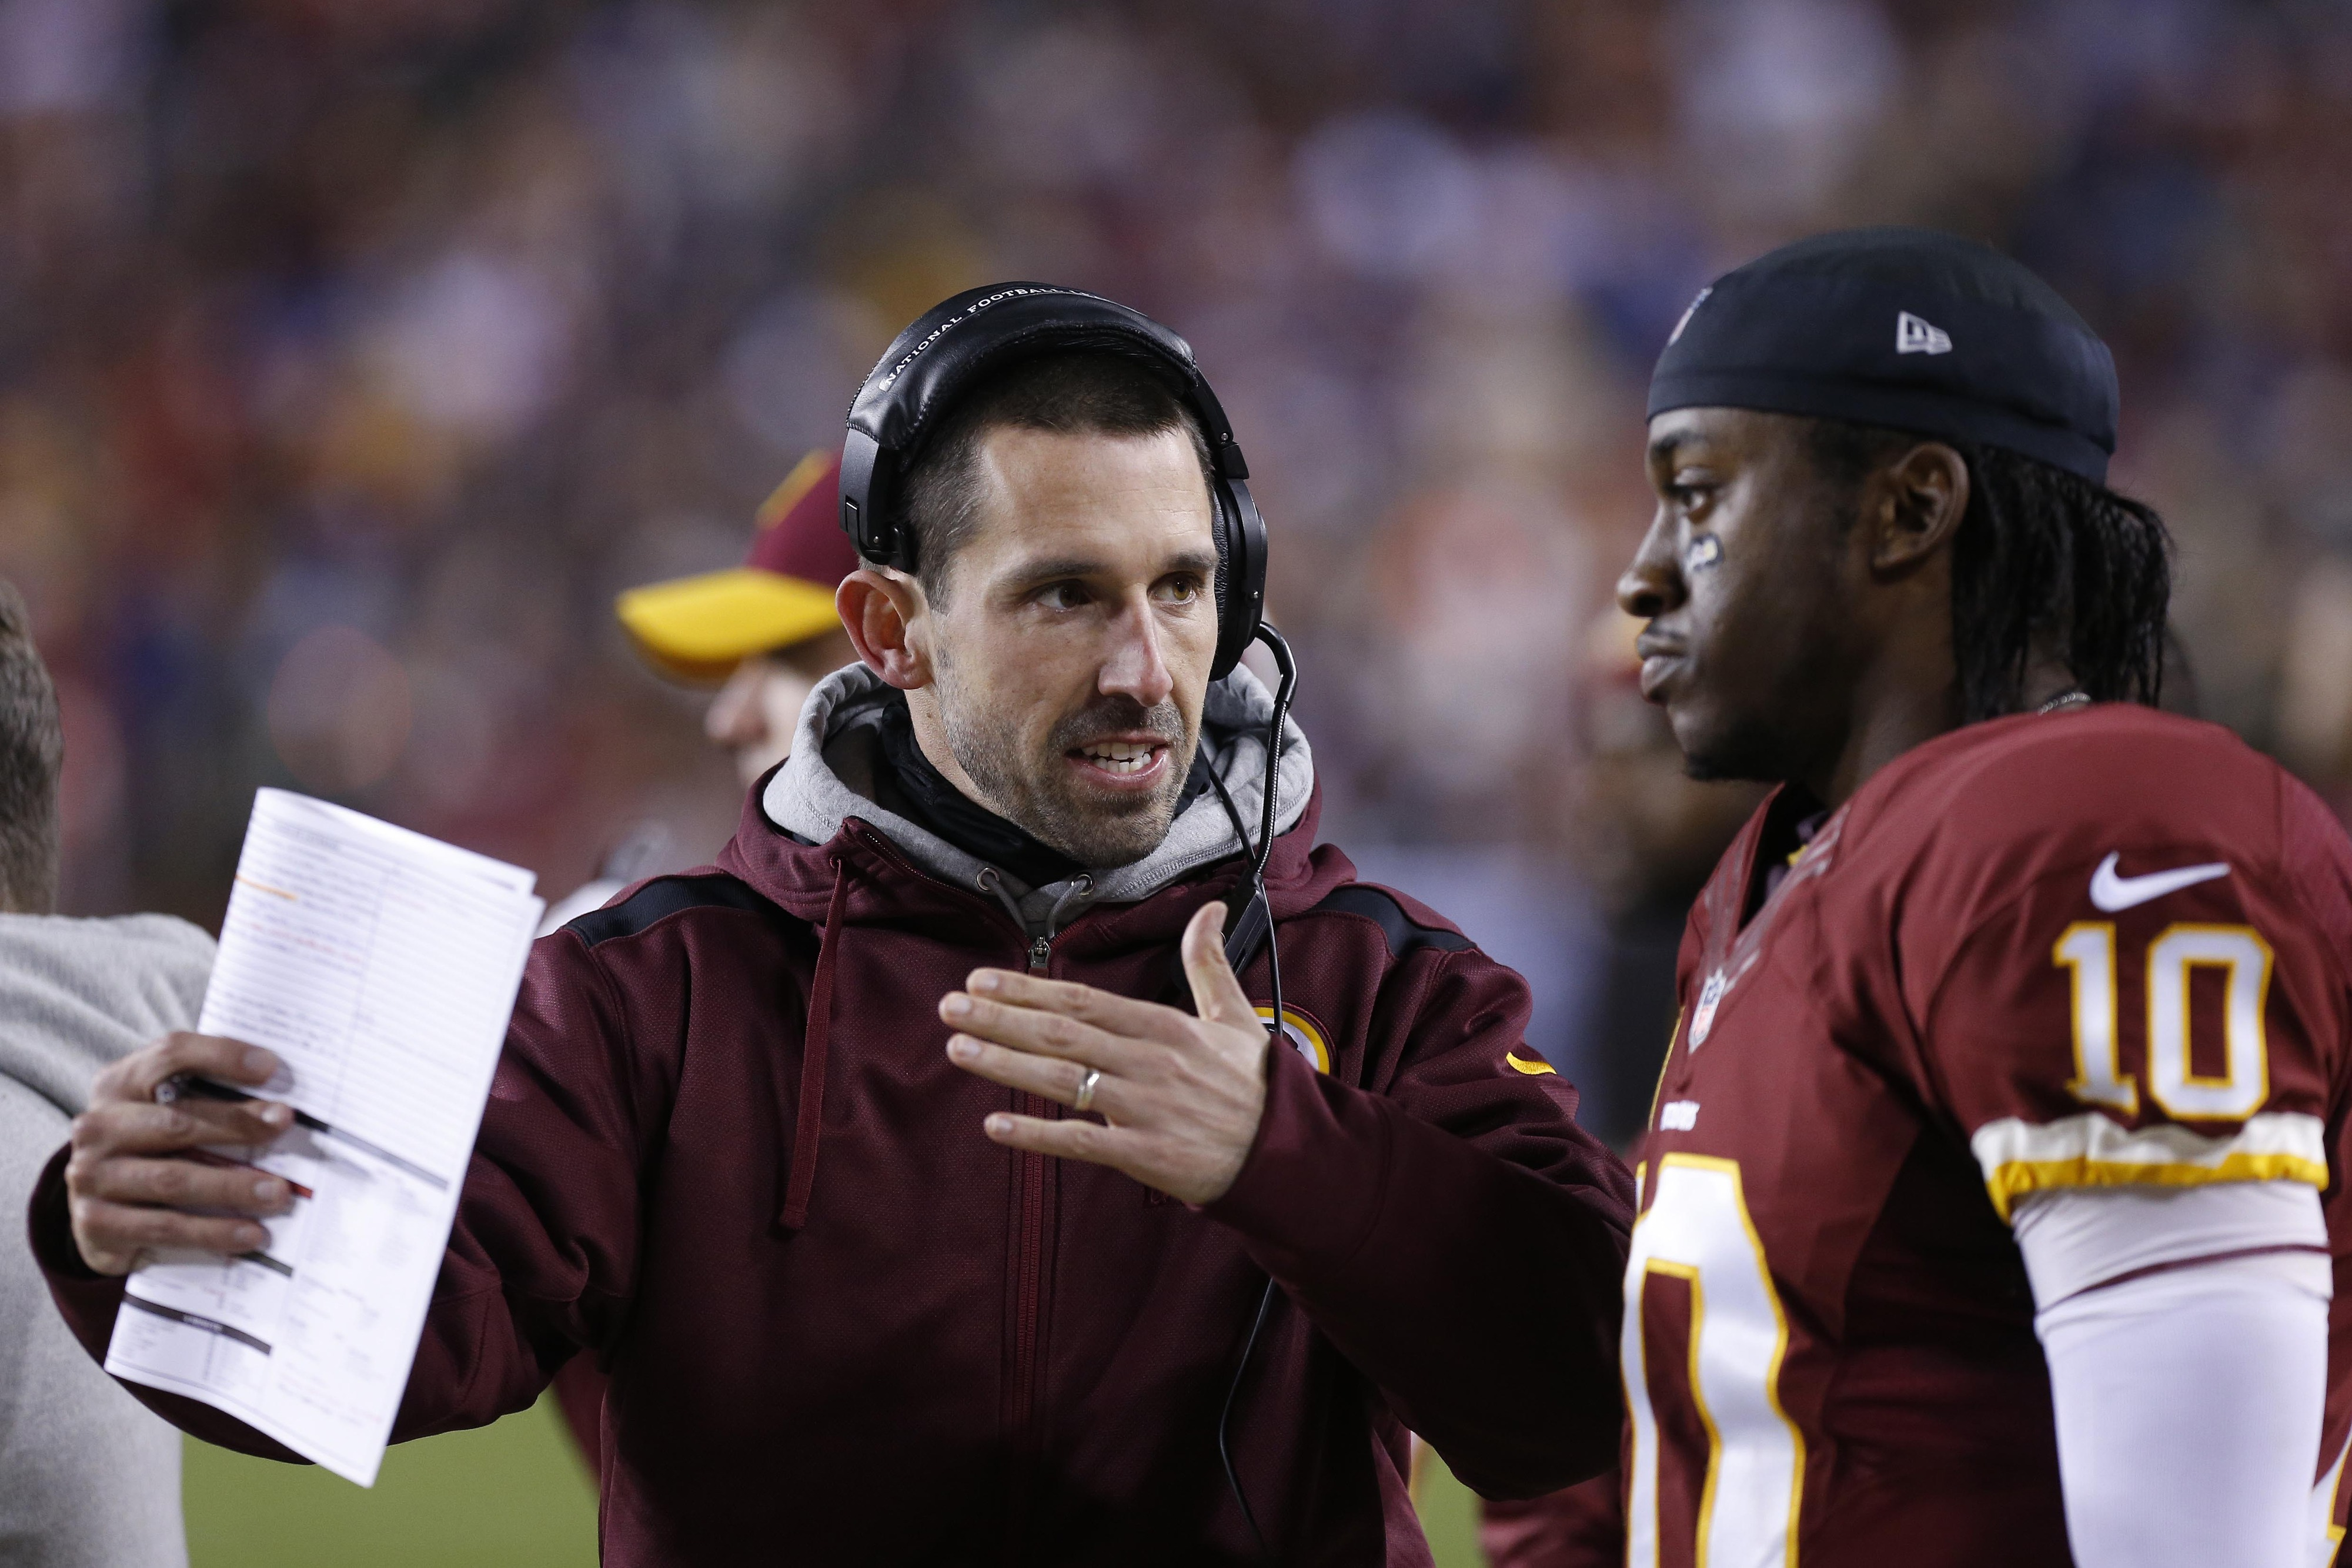 Ravens offensive coordinator search: Kyle Shanahan, Jim Hostler, Kirby Wilson have 2nd interviews